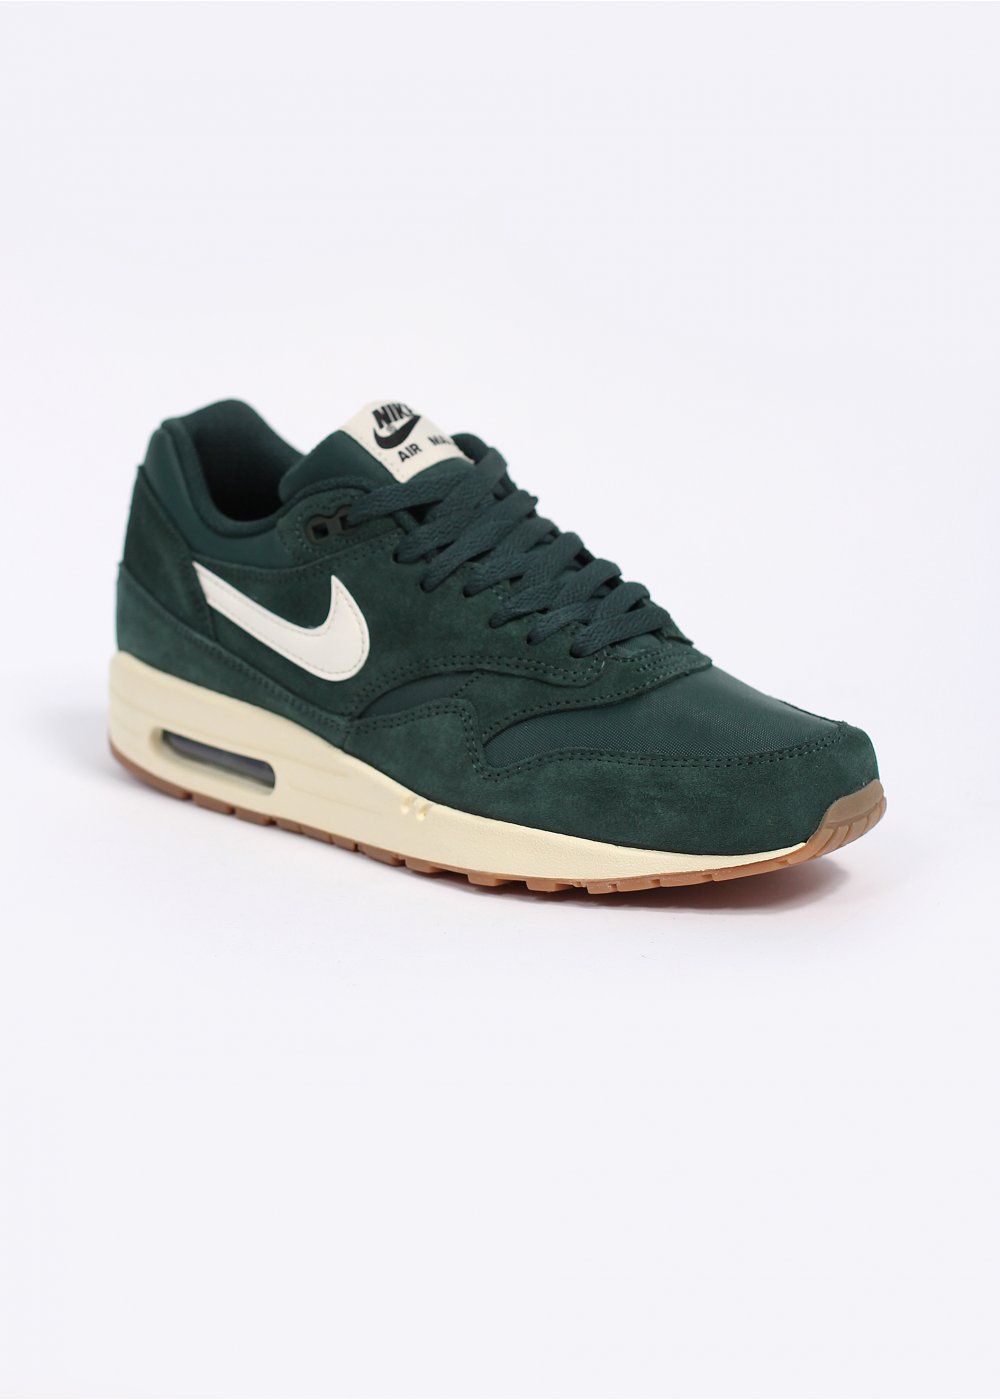 purchase cheap f7c06 78397 Air Max 1 Essential Trainers - Pro Green  Sail